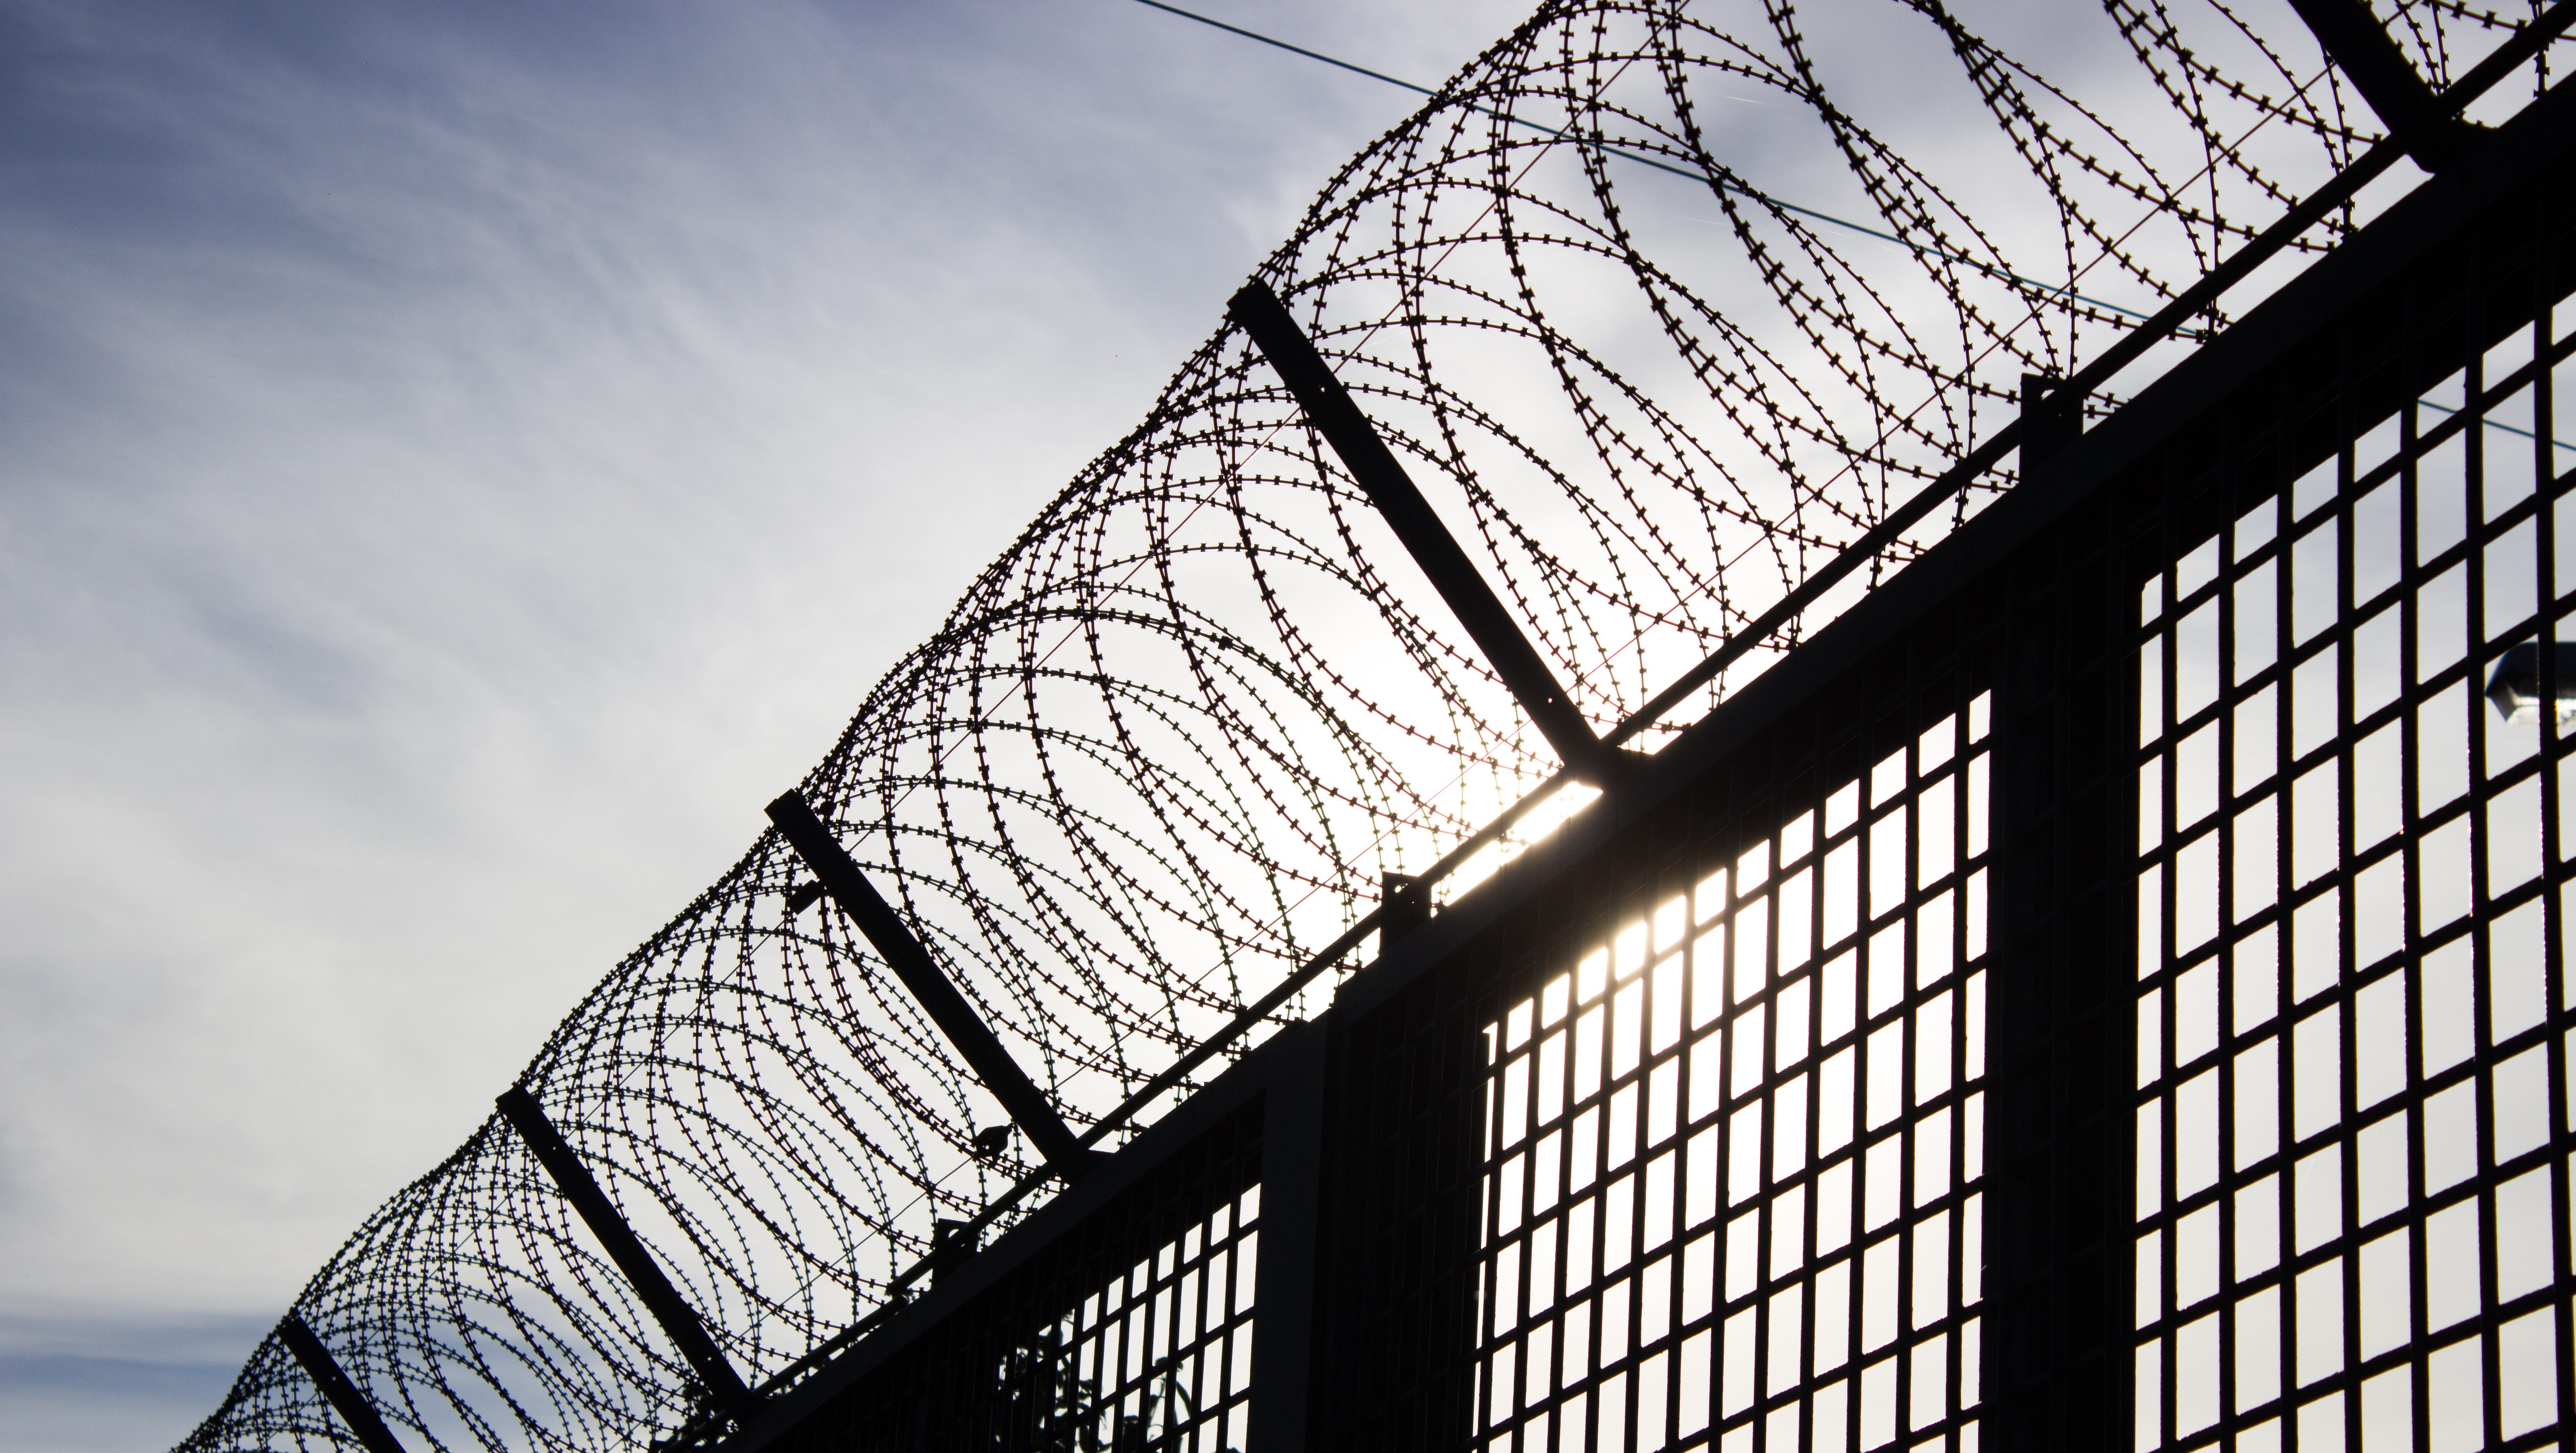 Barbed Wire Fence Prison. Barbed Wire Fence. Prison Fence In Black ...